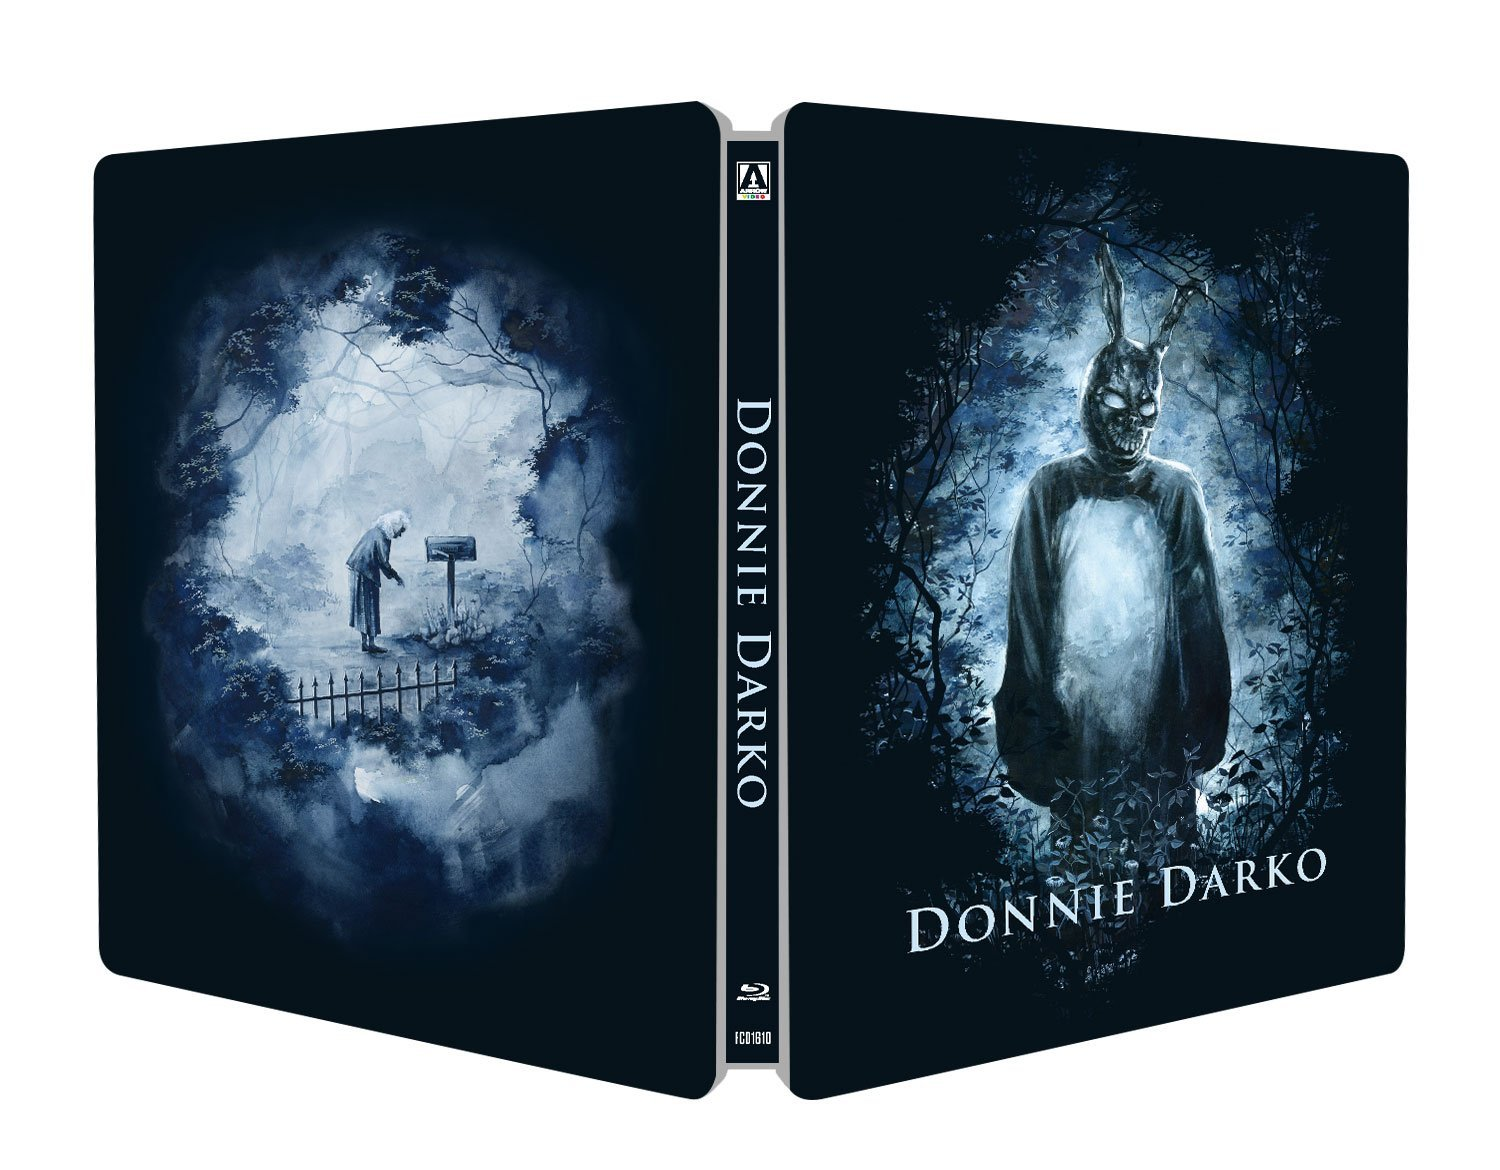 Donnie Darko steelbook 2